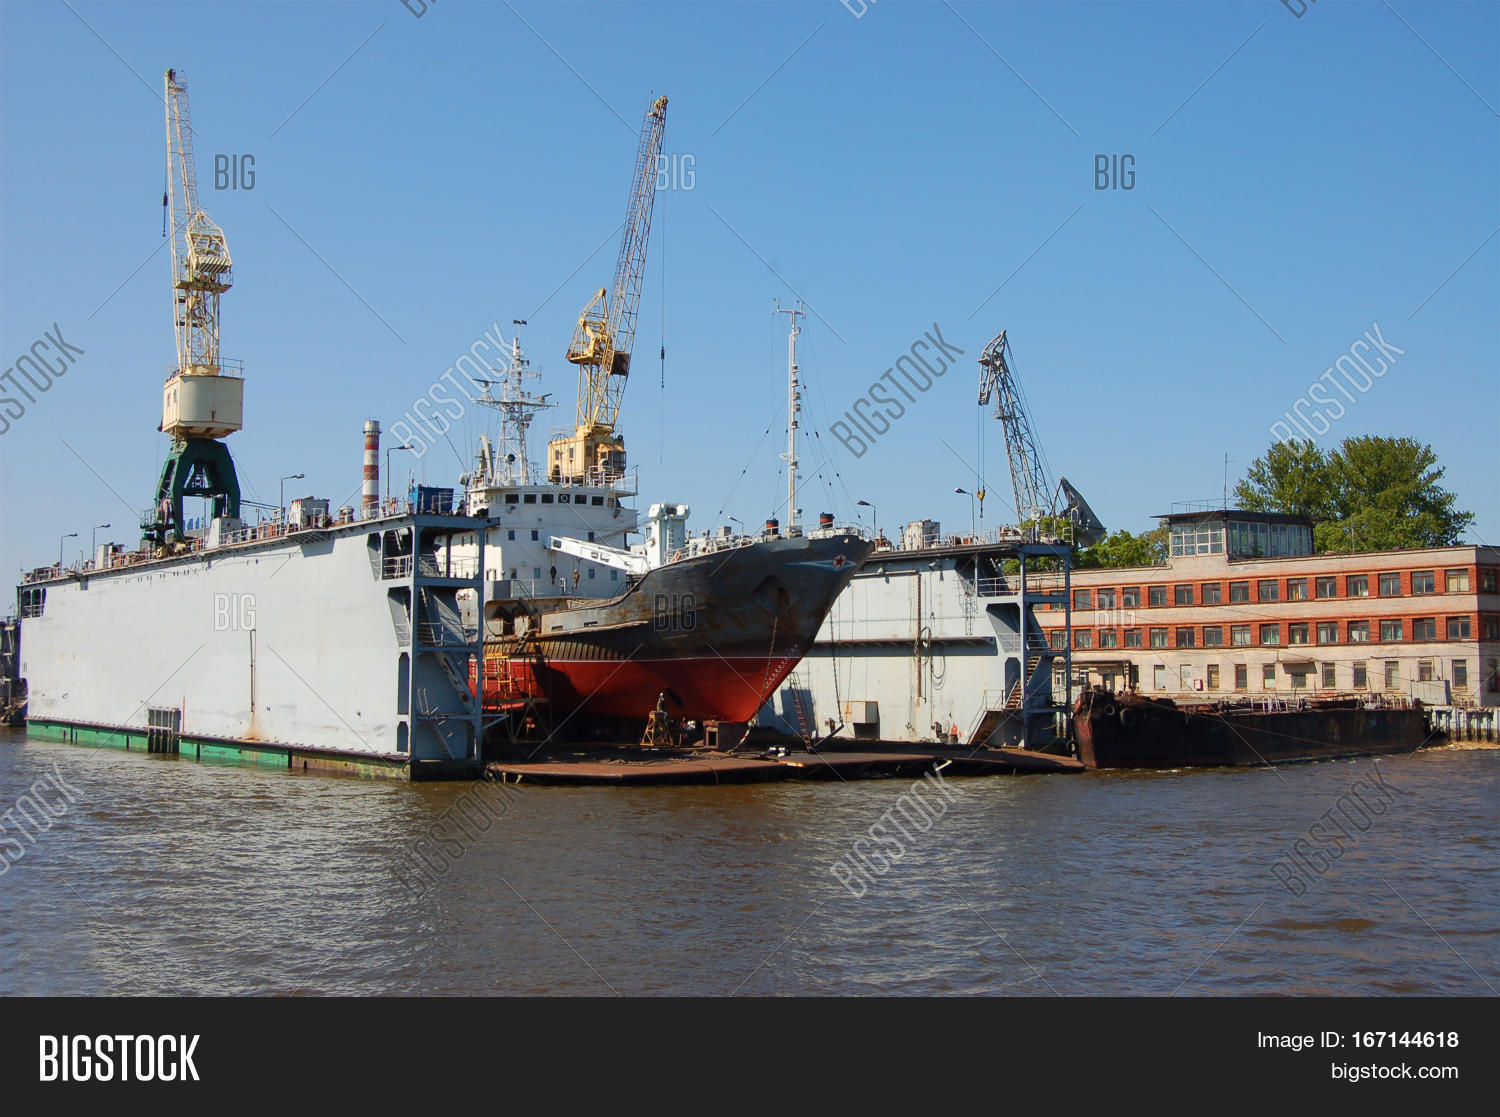 LOADING,Peterburg,Petergof,Staint,bulk,bulk-carrier,cargo,civil,cranes,dock,dry,dry-cargo,freight,gateway,industry,international,load,nautical,naval,navigation,navy,portn,repair,sea,seaport,ship,shipping,vessel